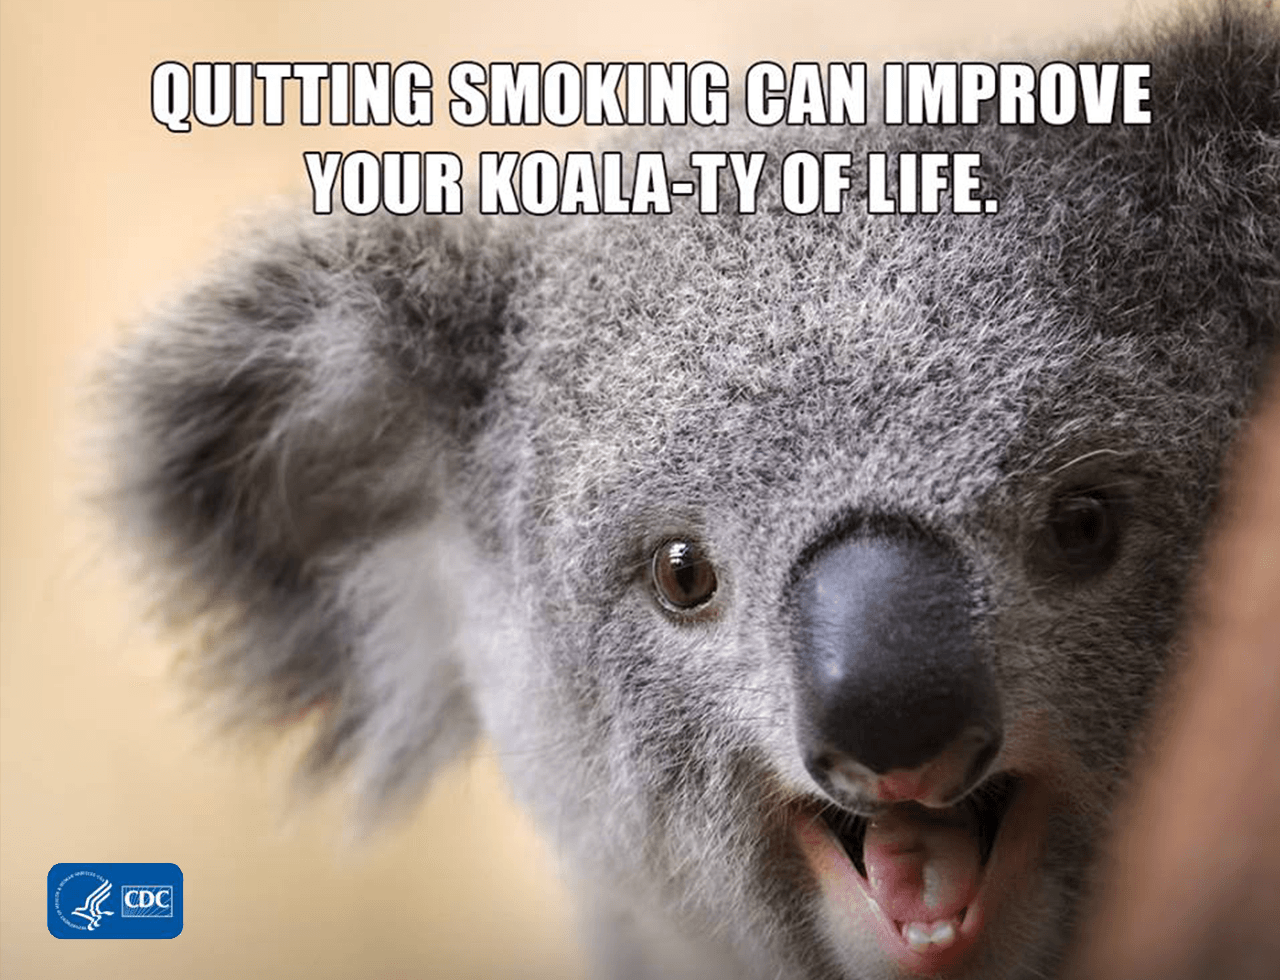 Image of koala with text quitting smoking can improve your koala-ty of life.